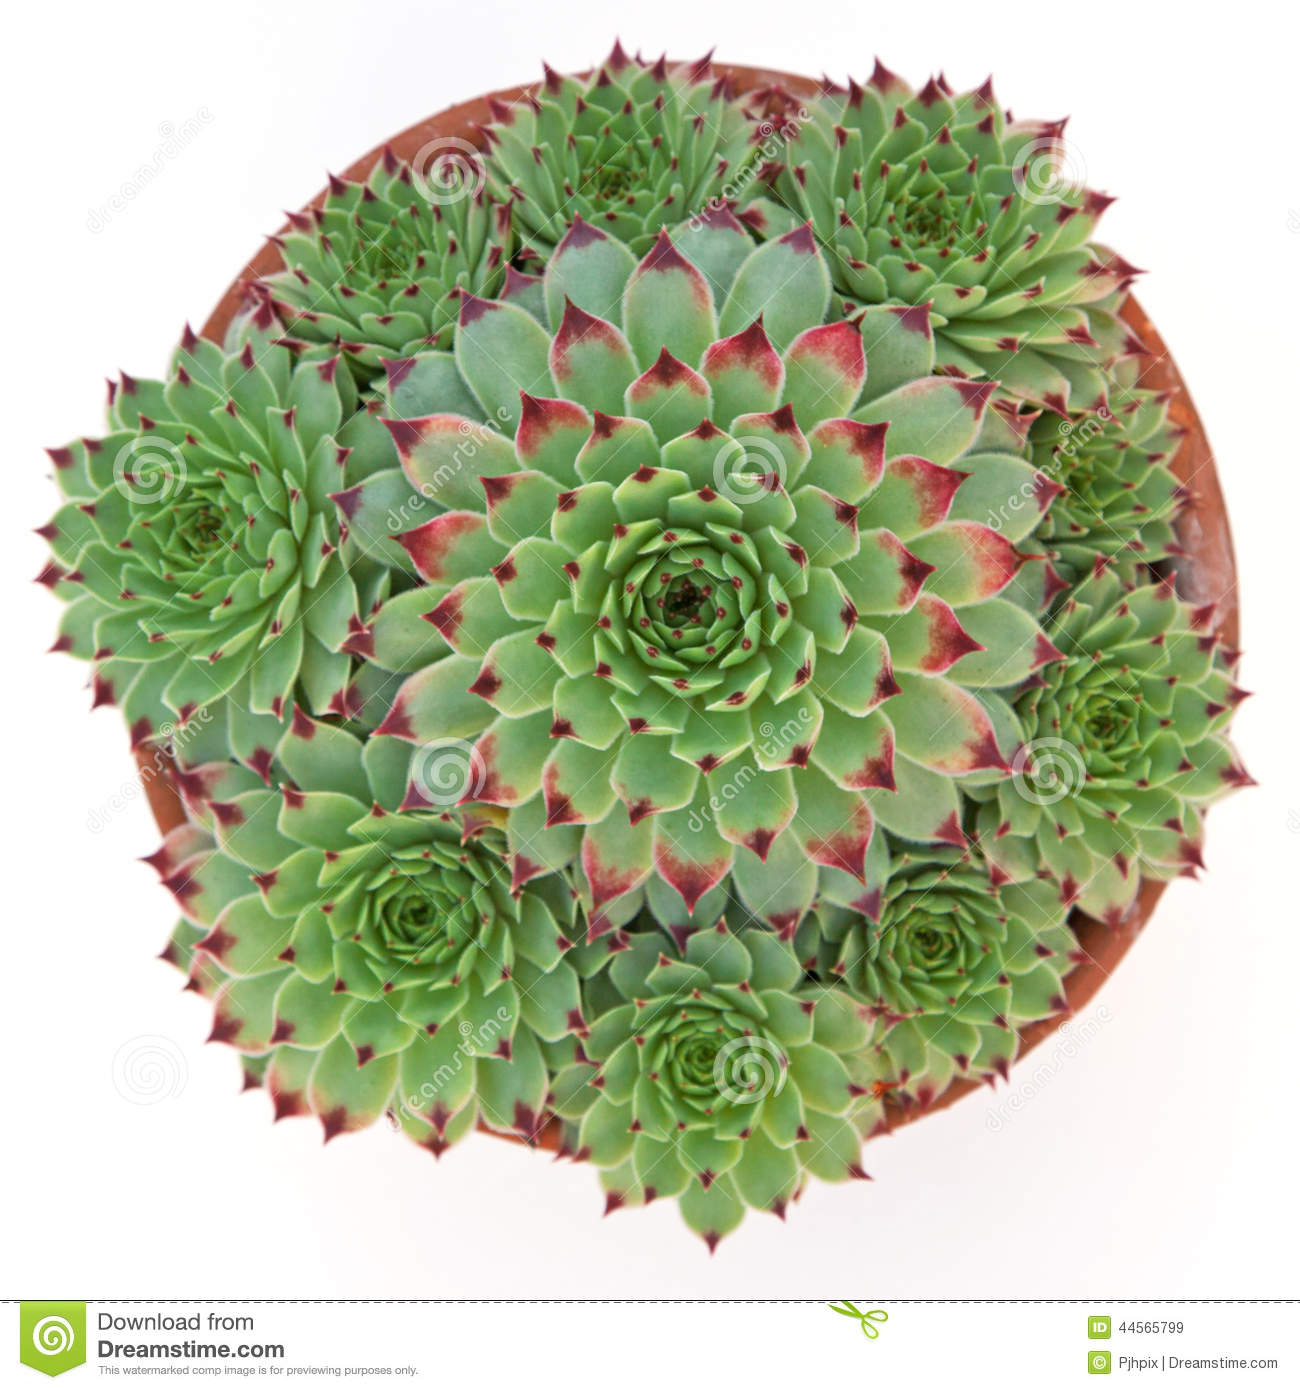 Succulent Sempervivum Calcareum In Ceramic Plant Pot With Side O.